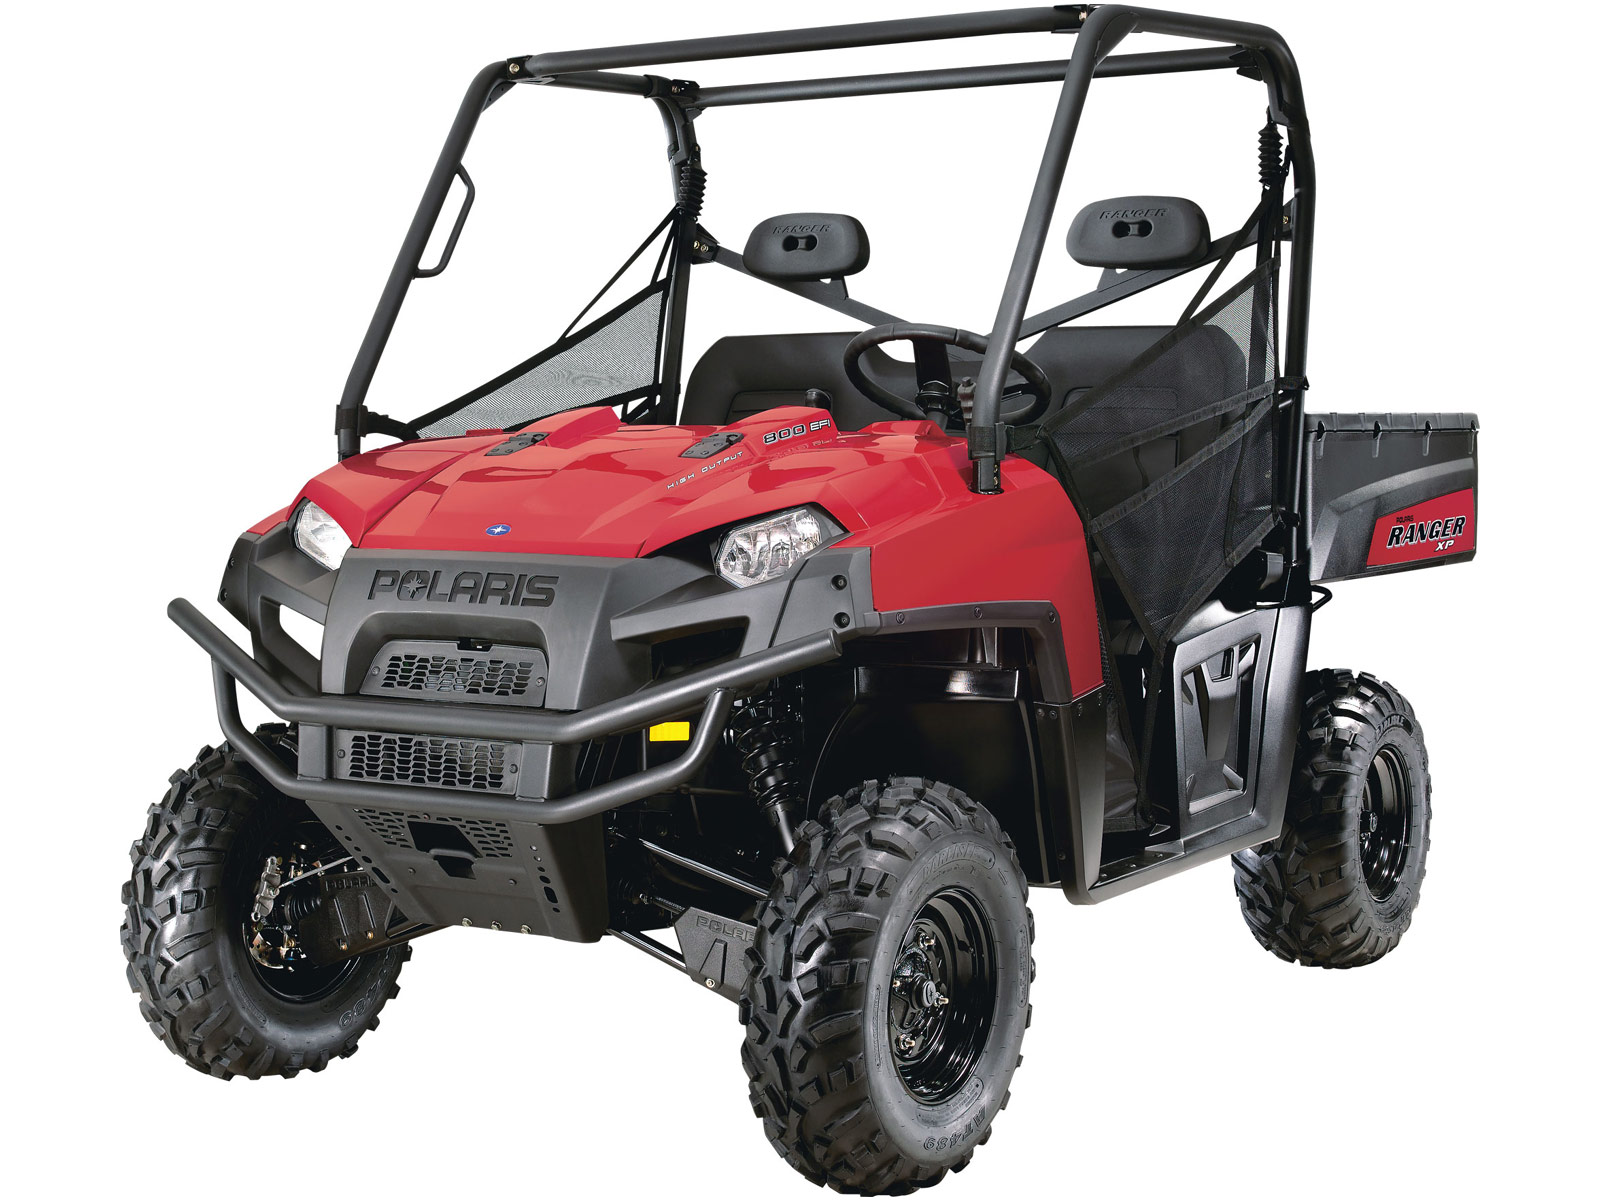 Polaris ranger photo - 6